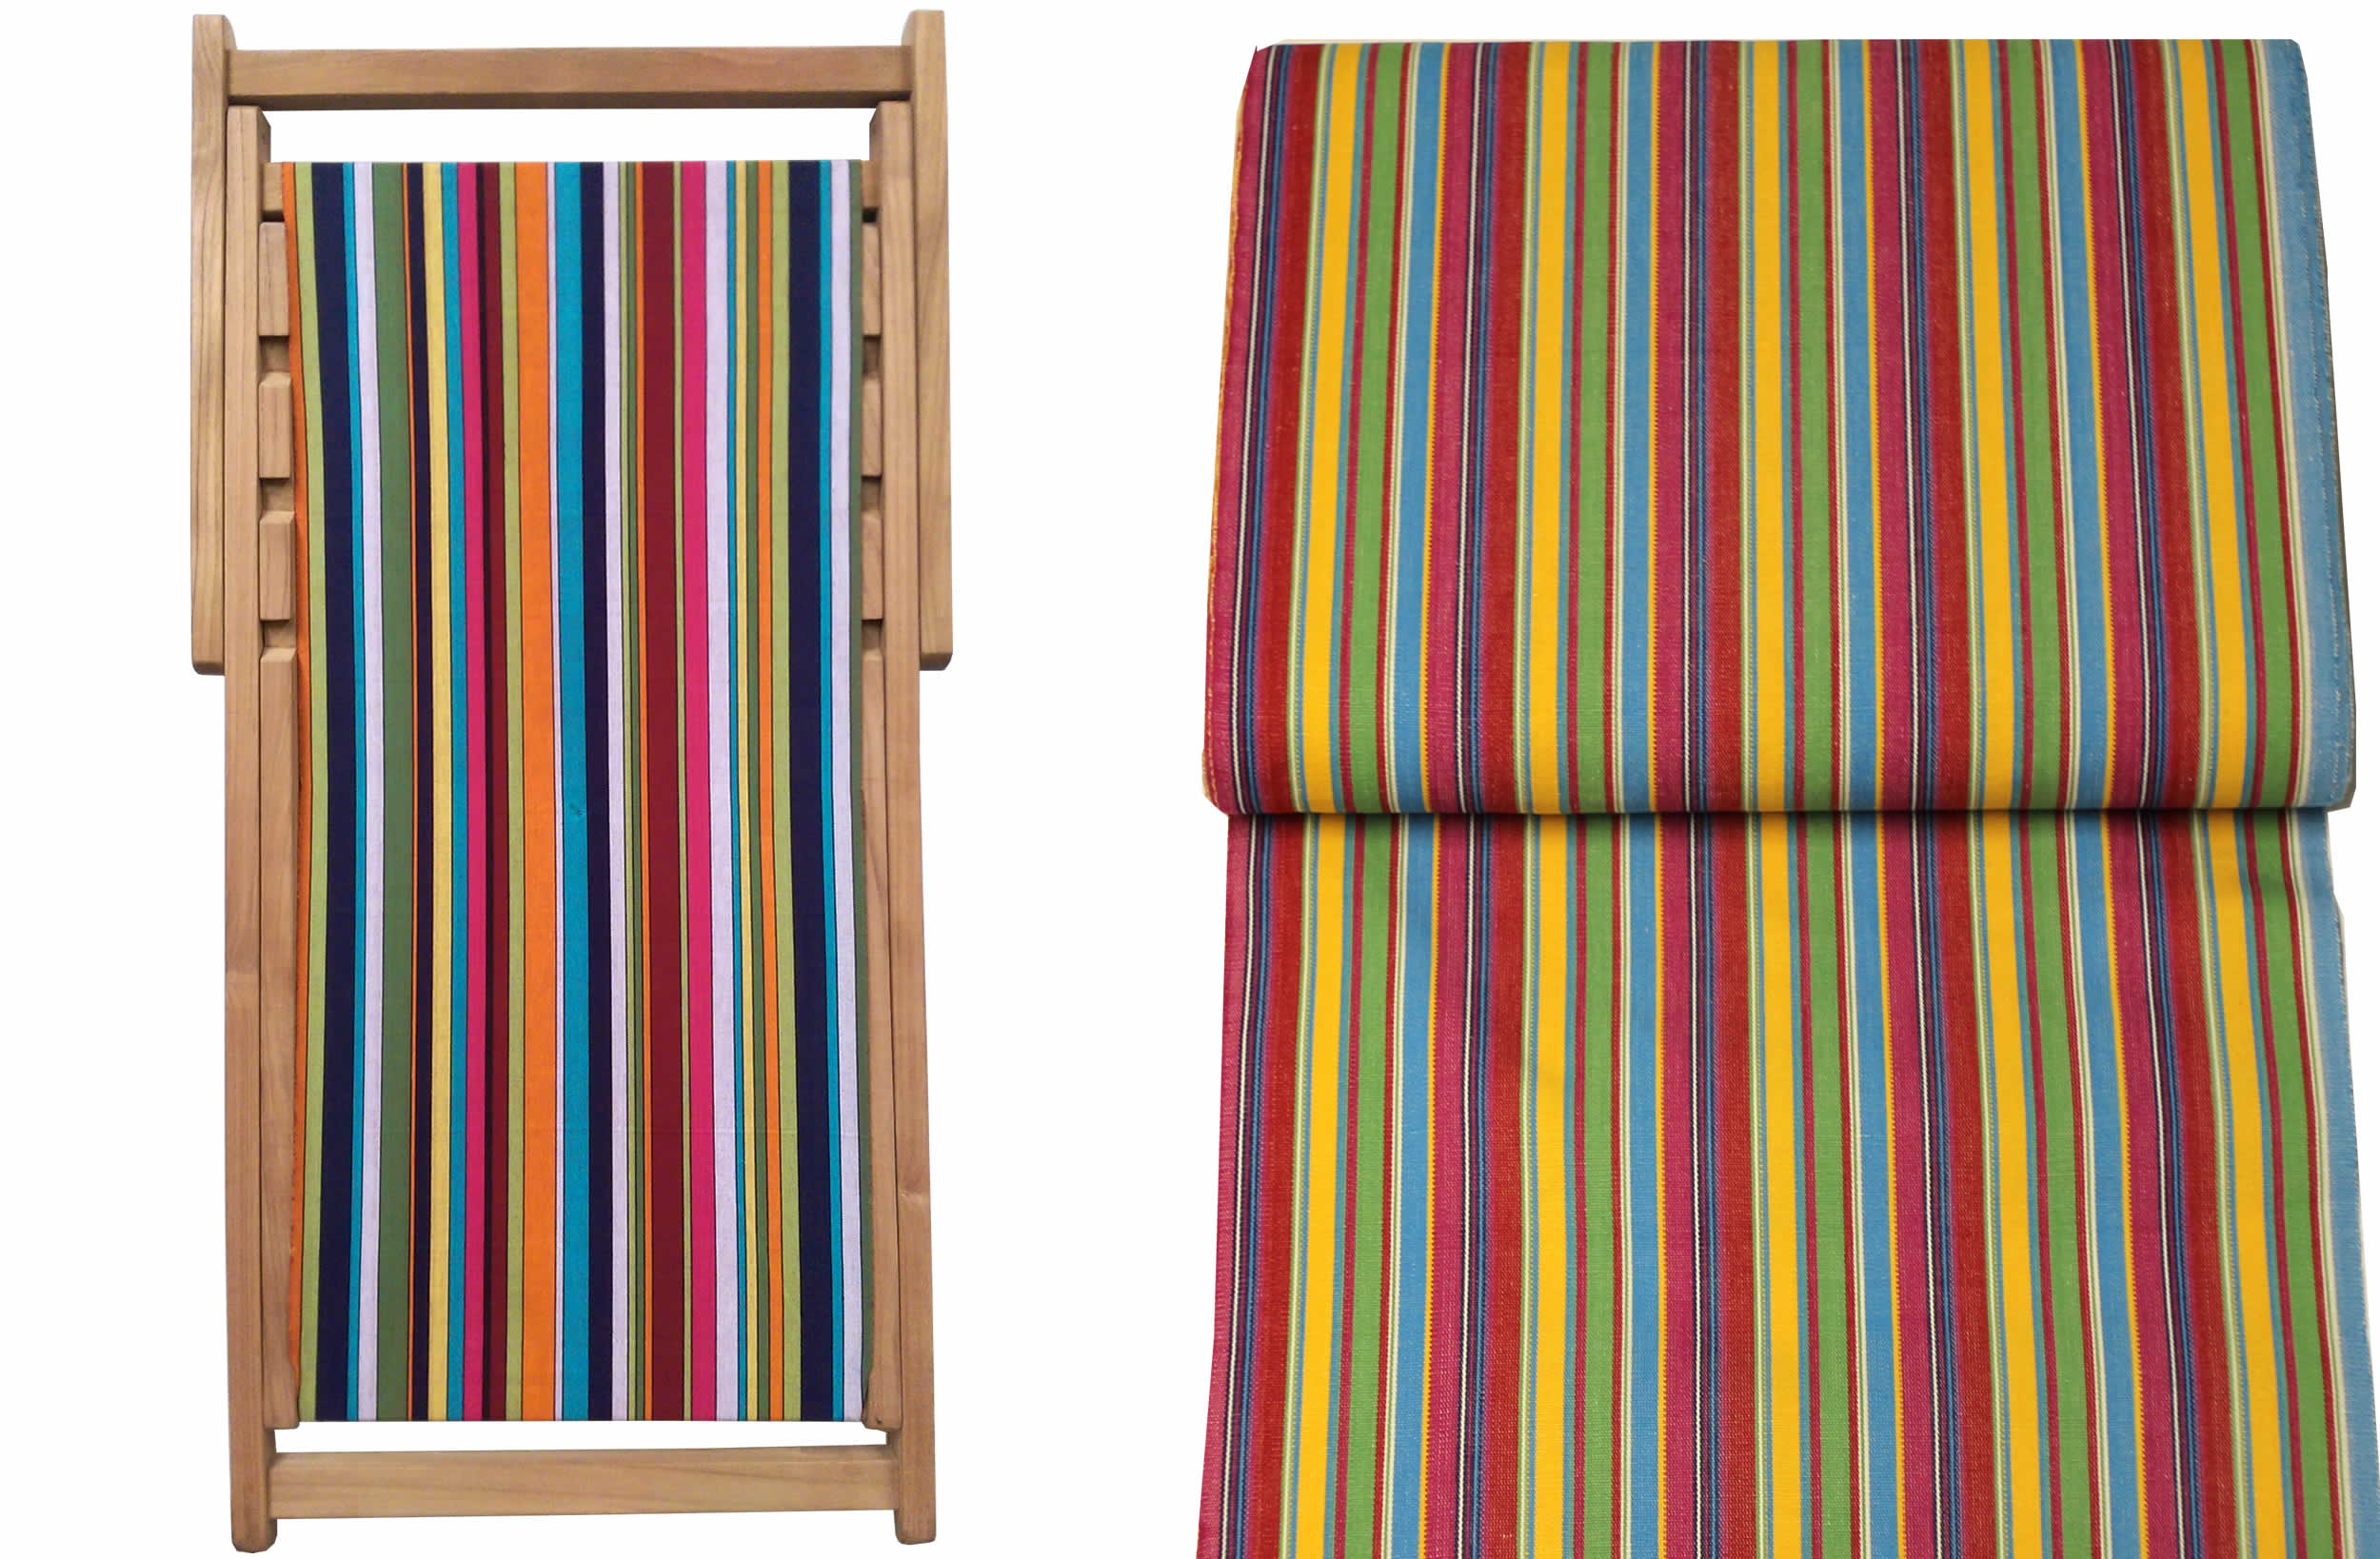 Teak Deck Chairs pink, green, yellow stripes